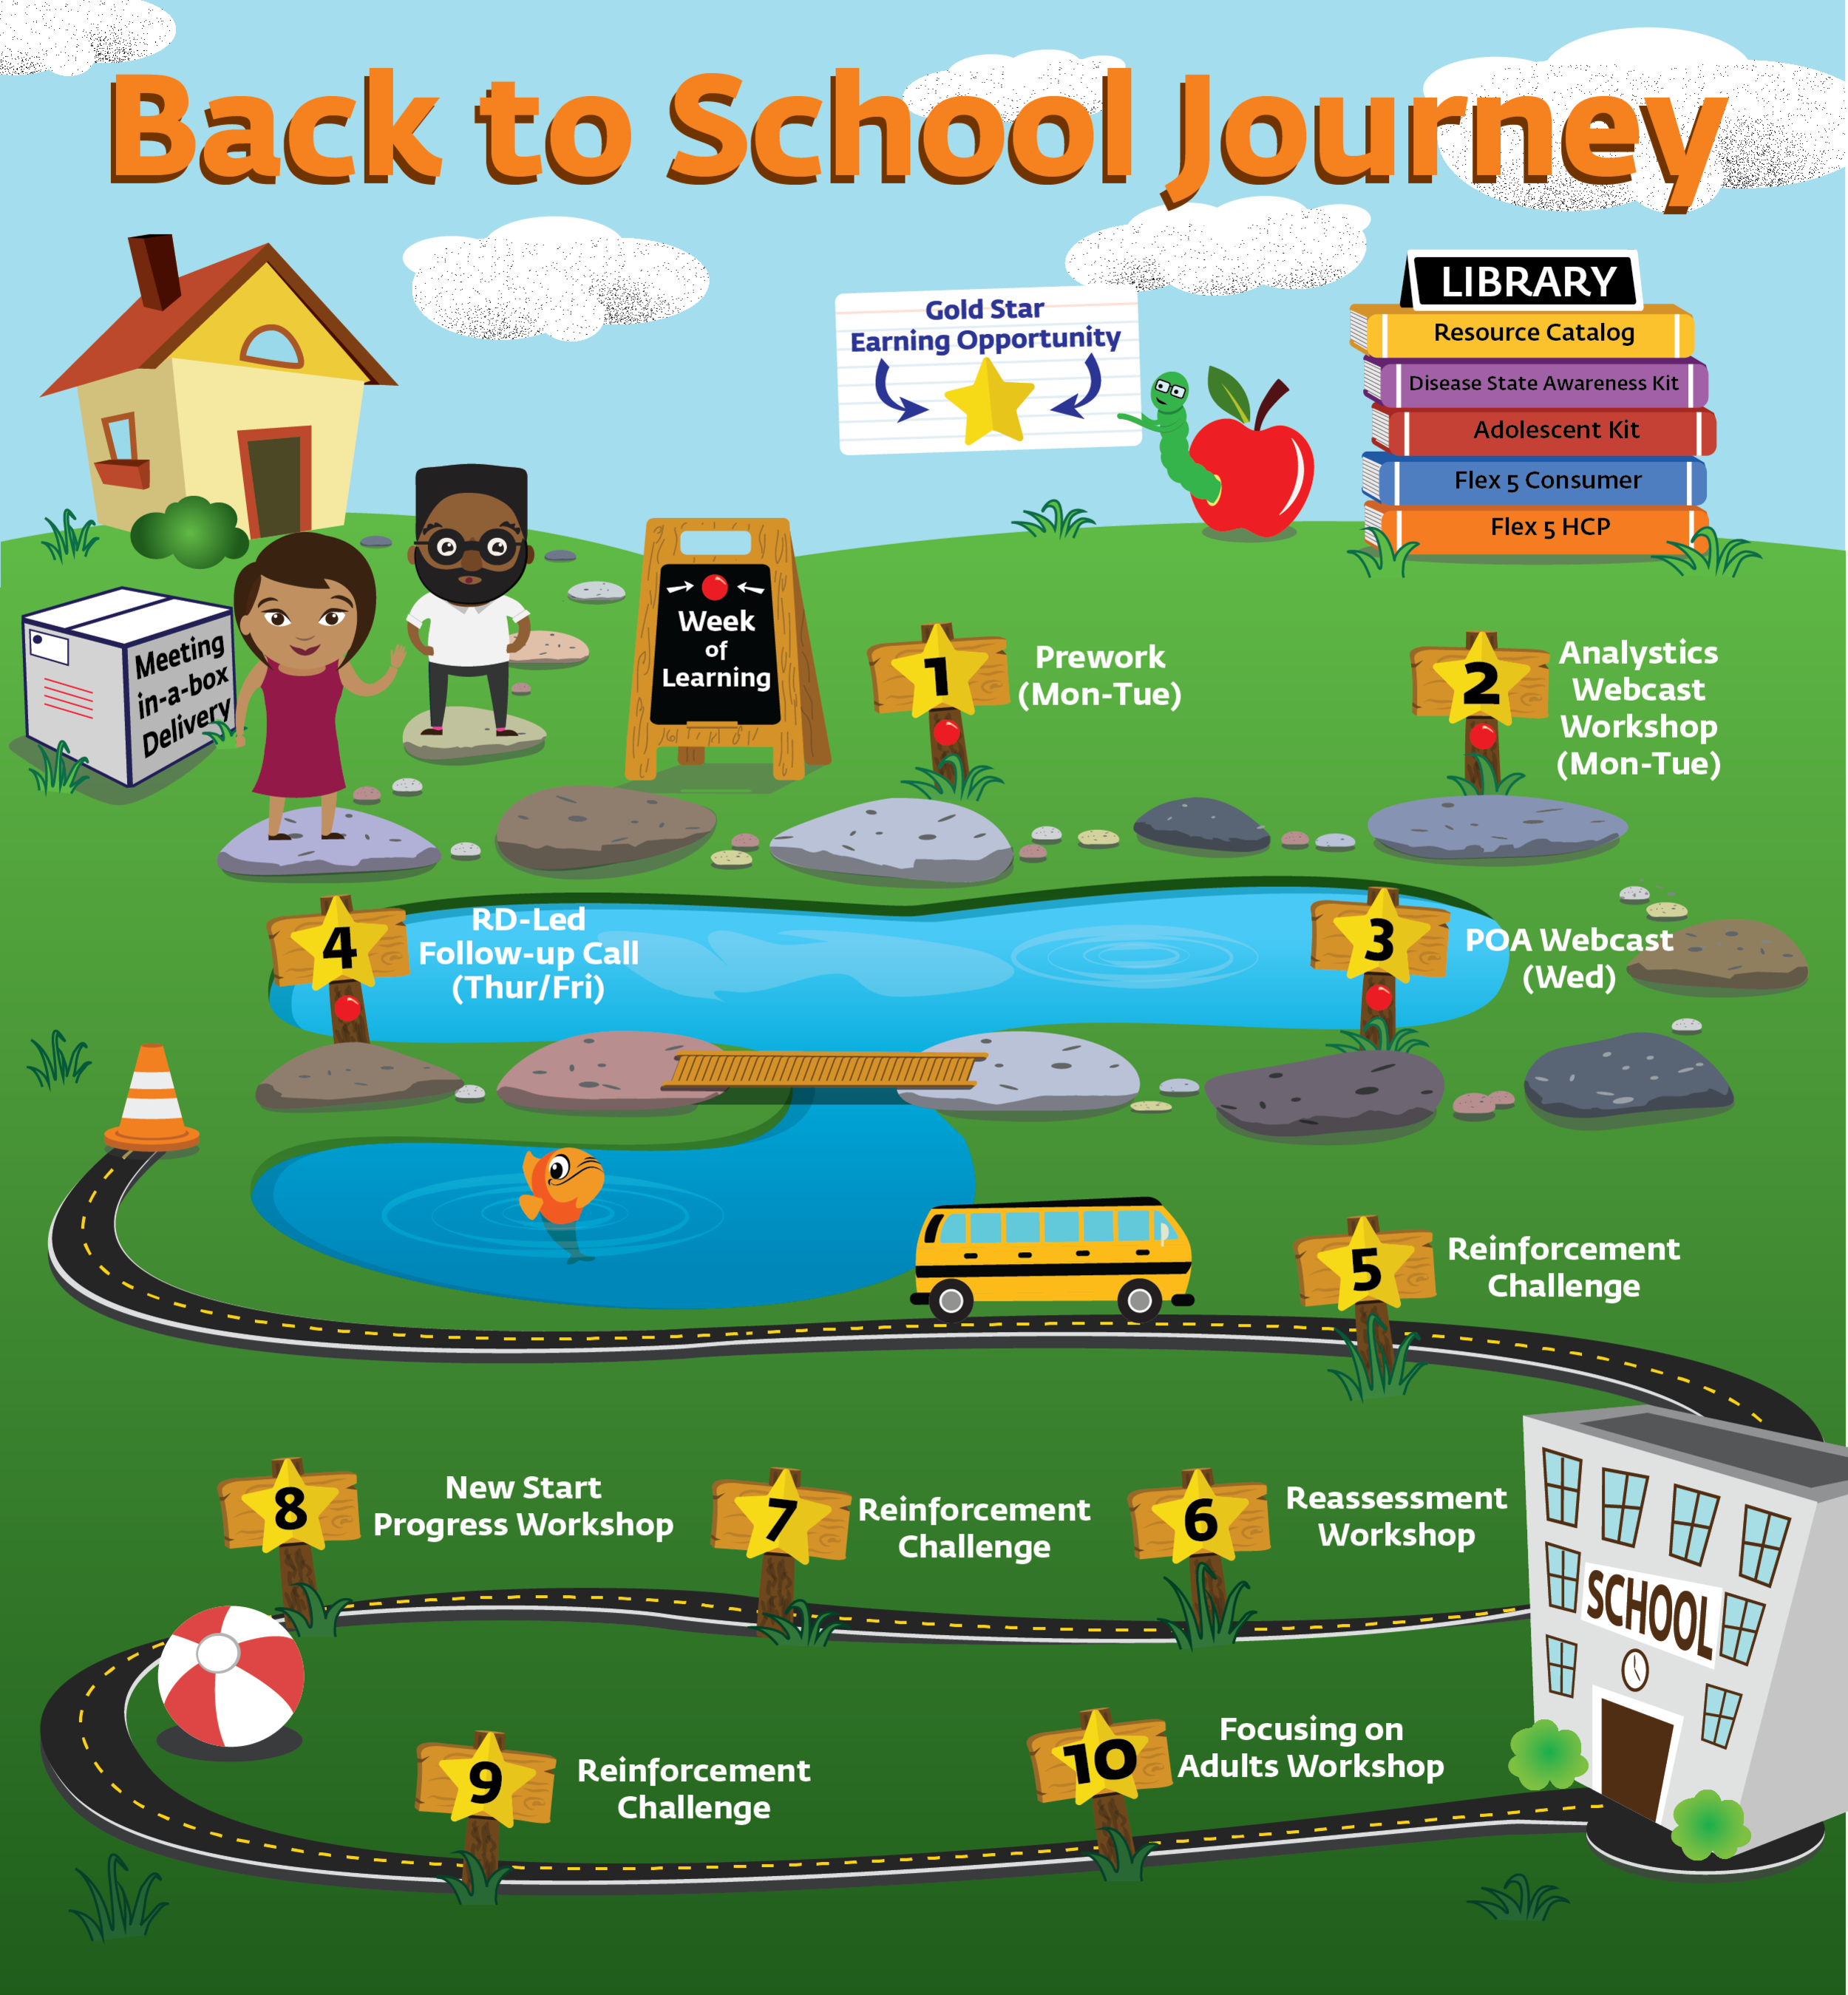 Back to School Journey-01.png